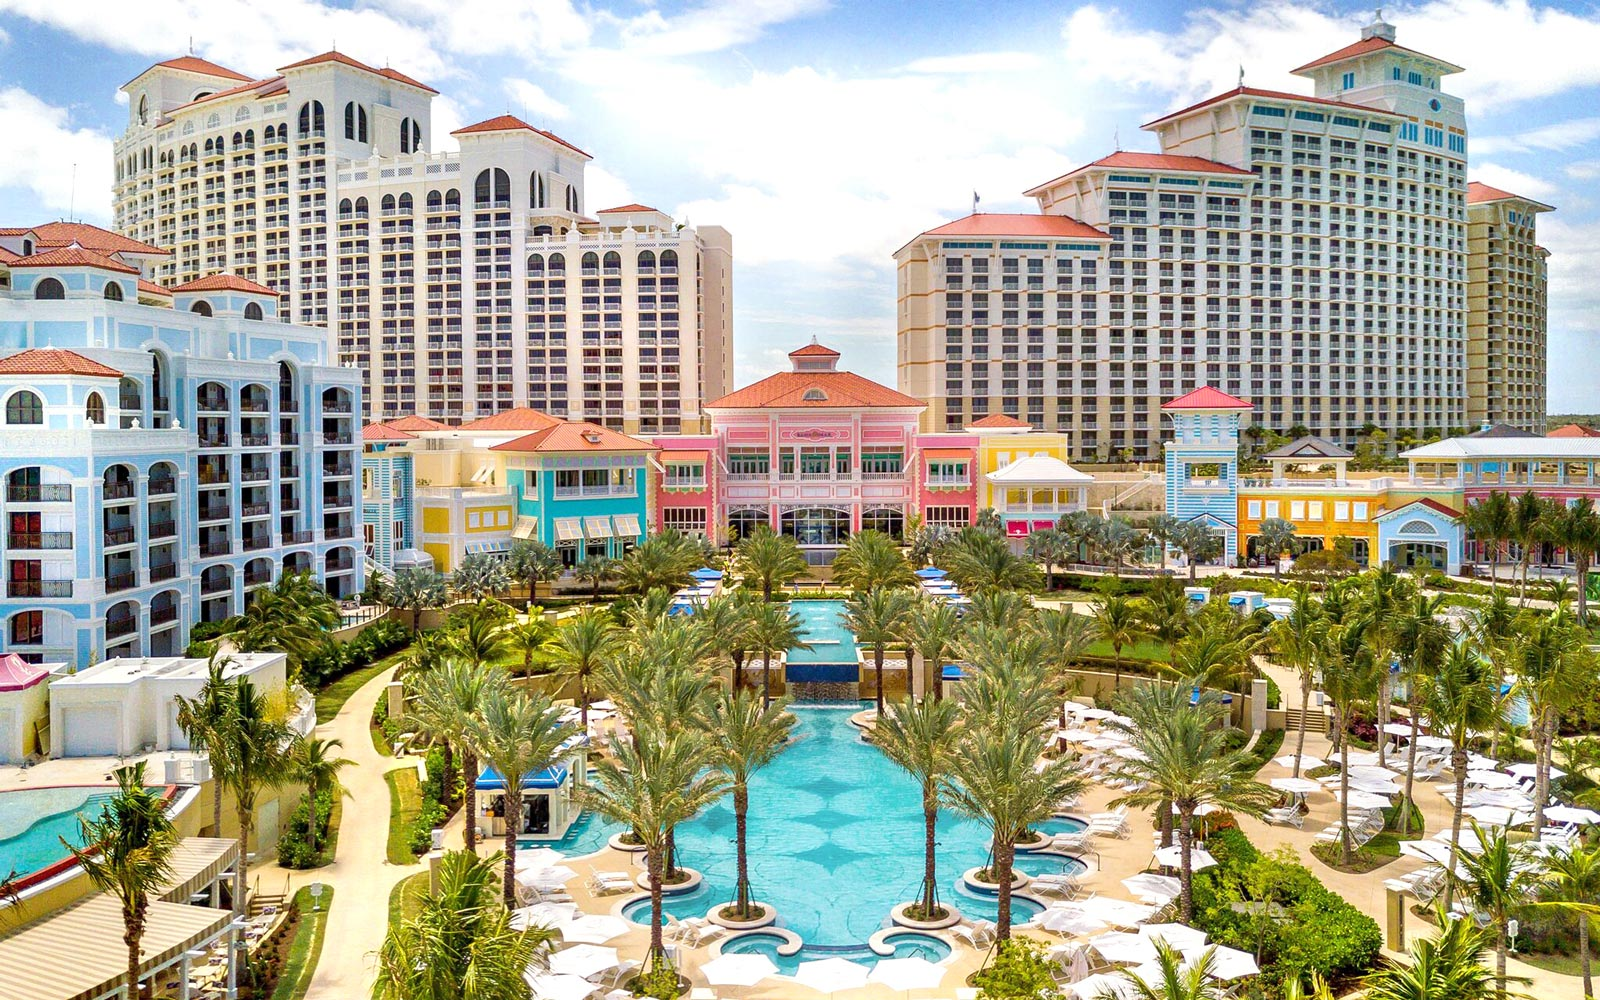 The Bahamas' Popular Baha Mar Is Open and It's Getting Guests Involved in Hurricane Dorian Relief Efforts